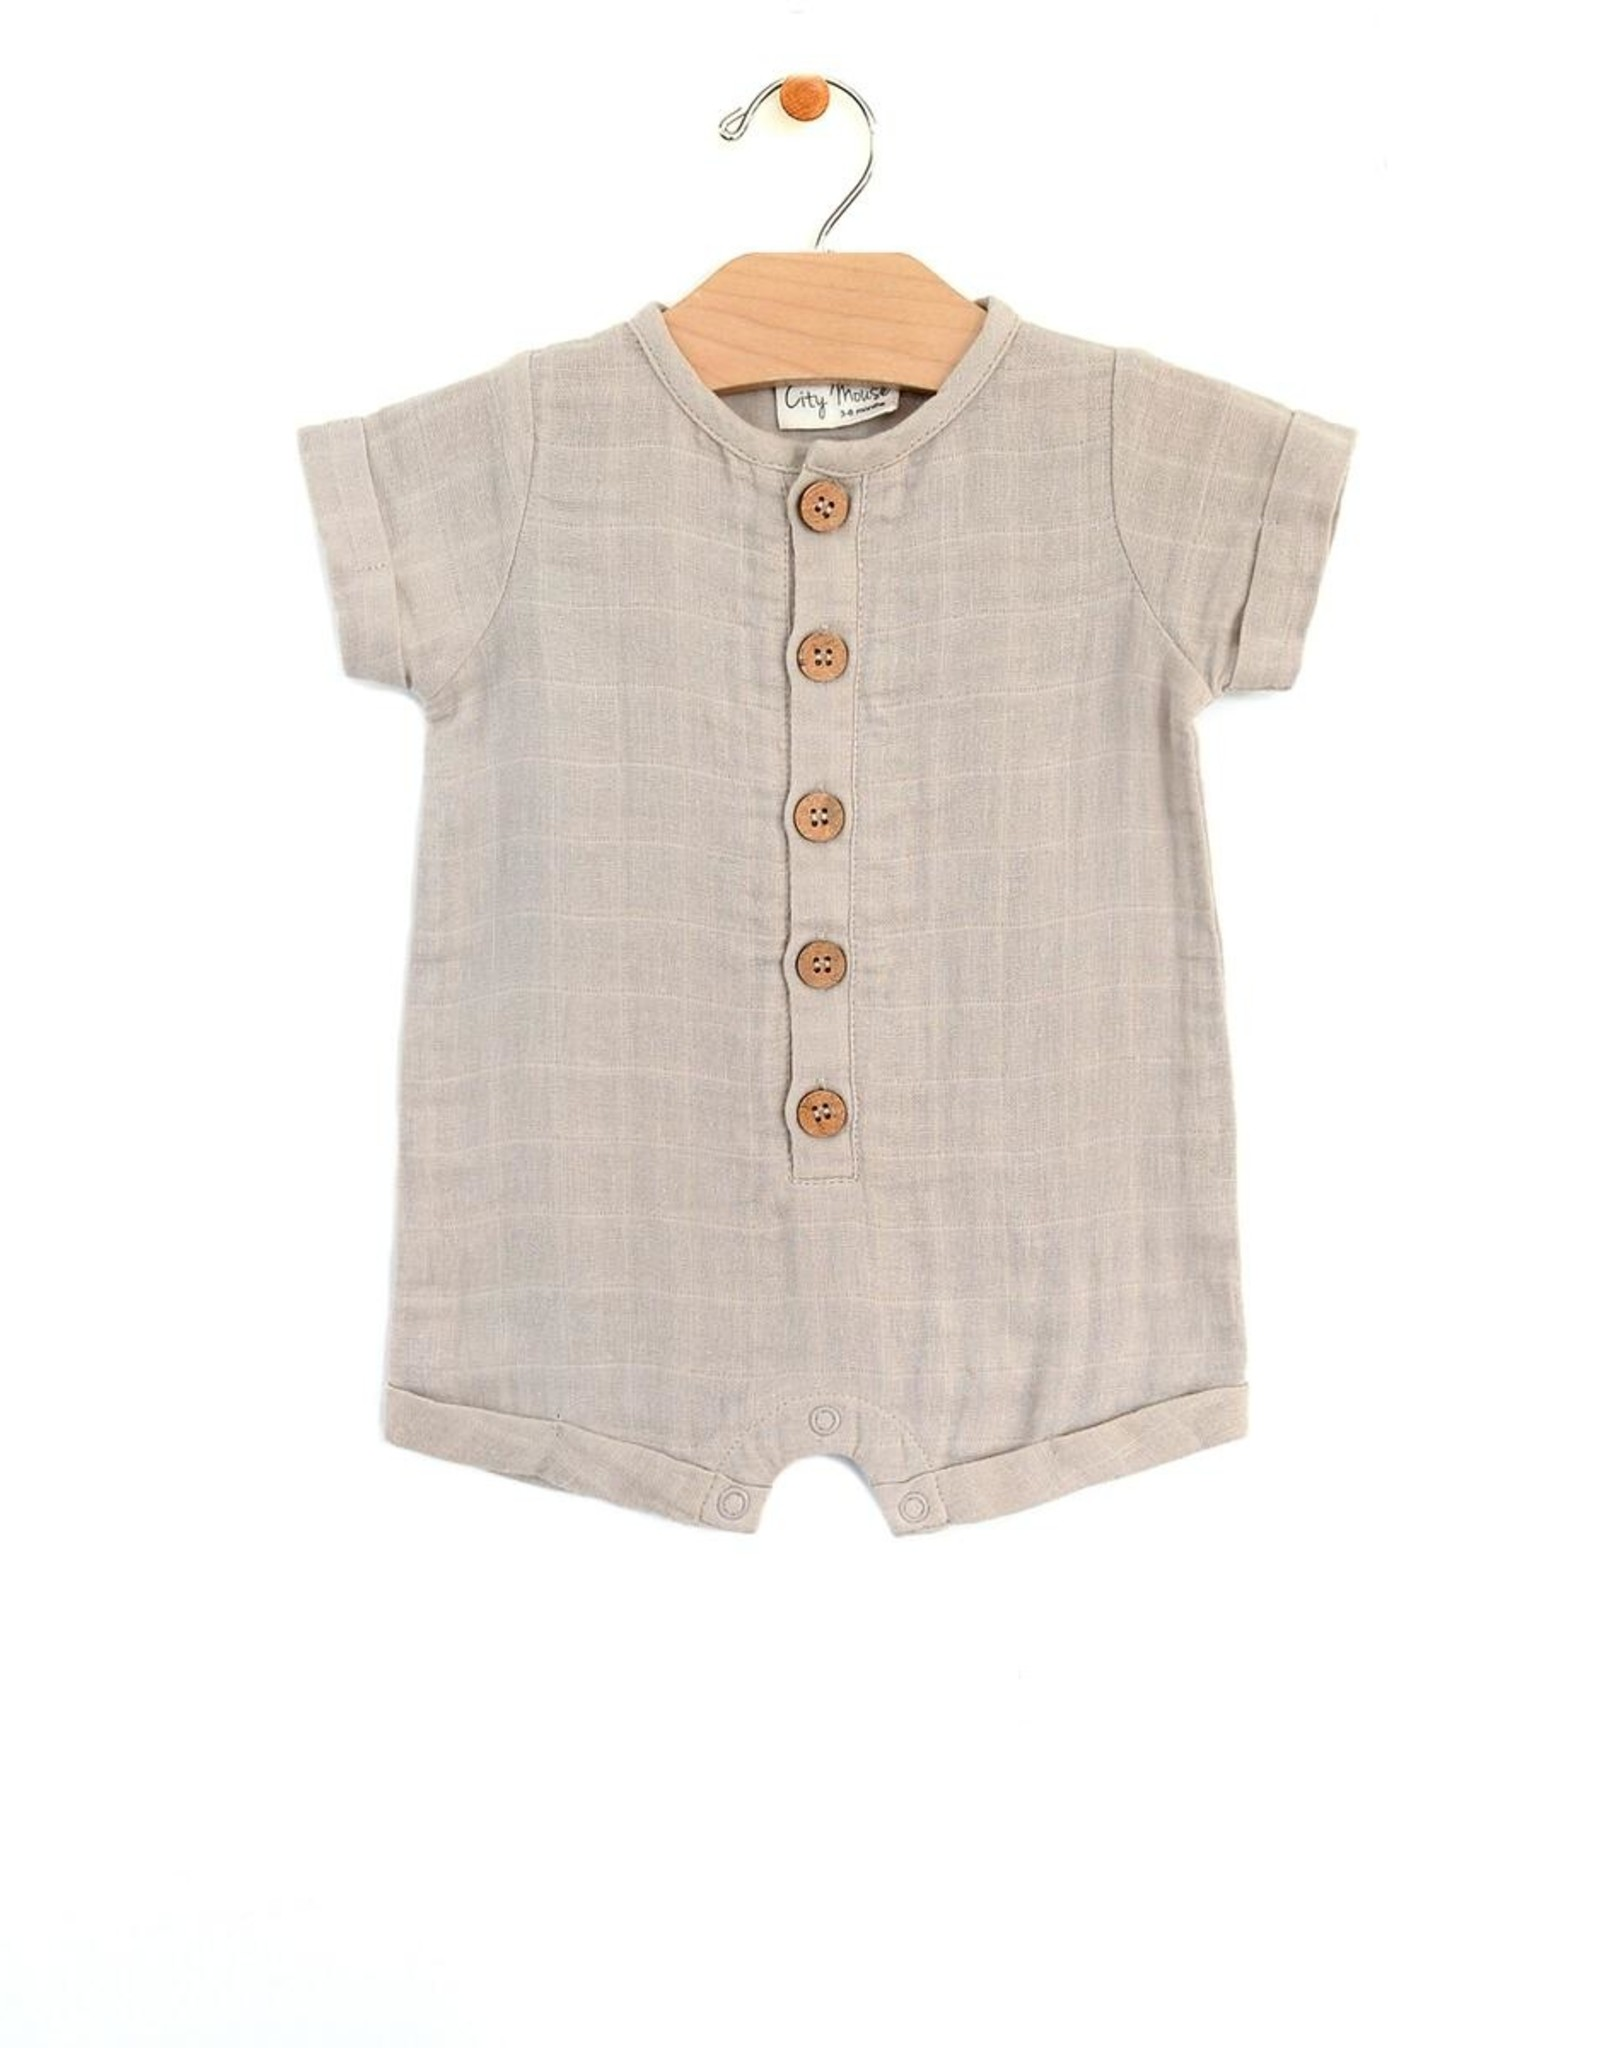 City Mouse Infant Short Romper Muslin Rain Cloud